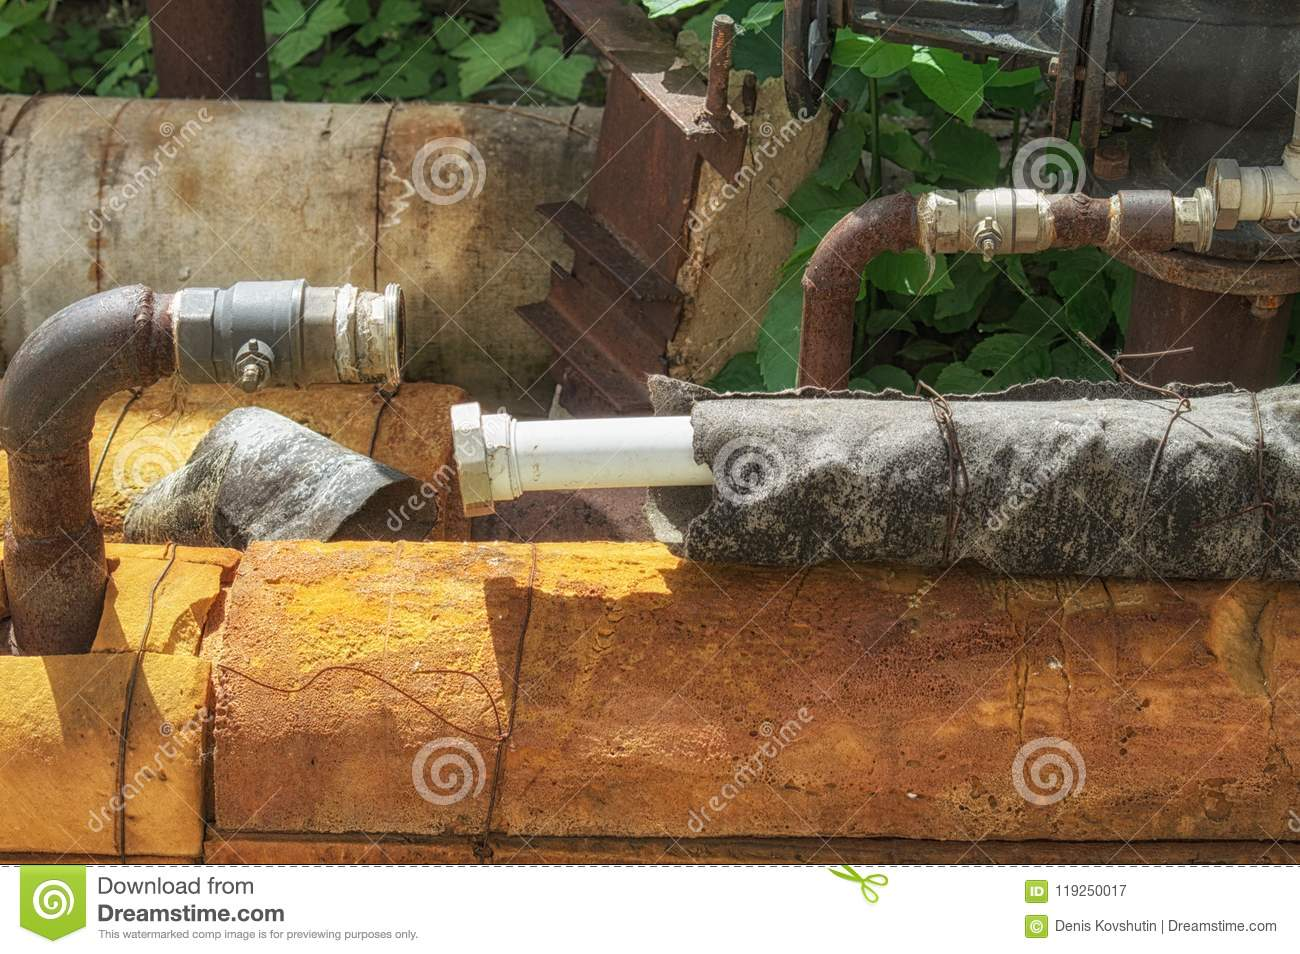 Disconnected Water Supply Pipes Cut Off For Non Payment